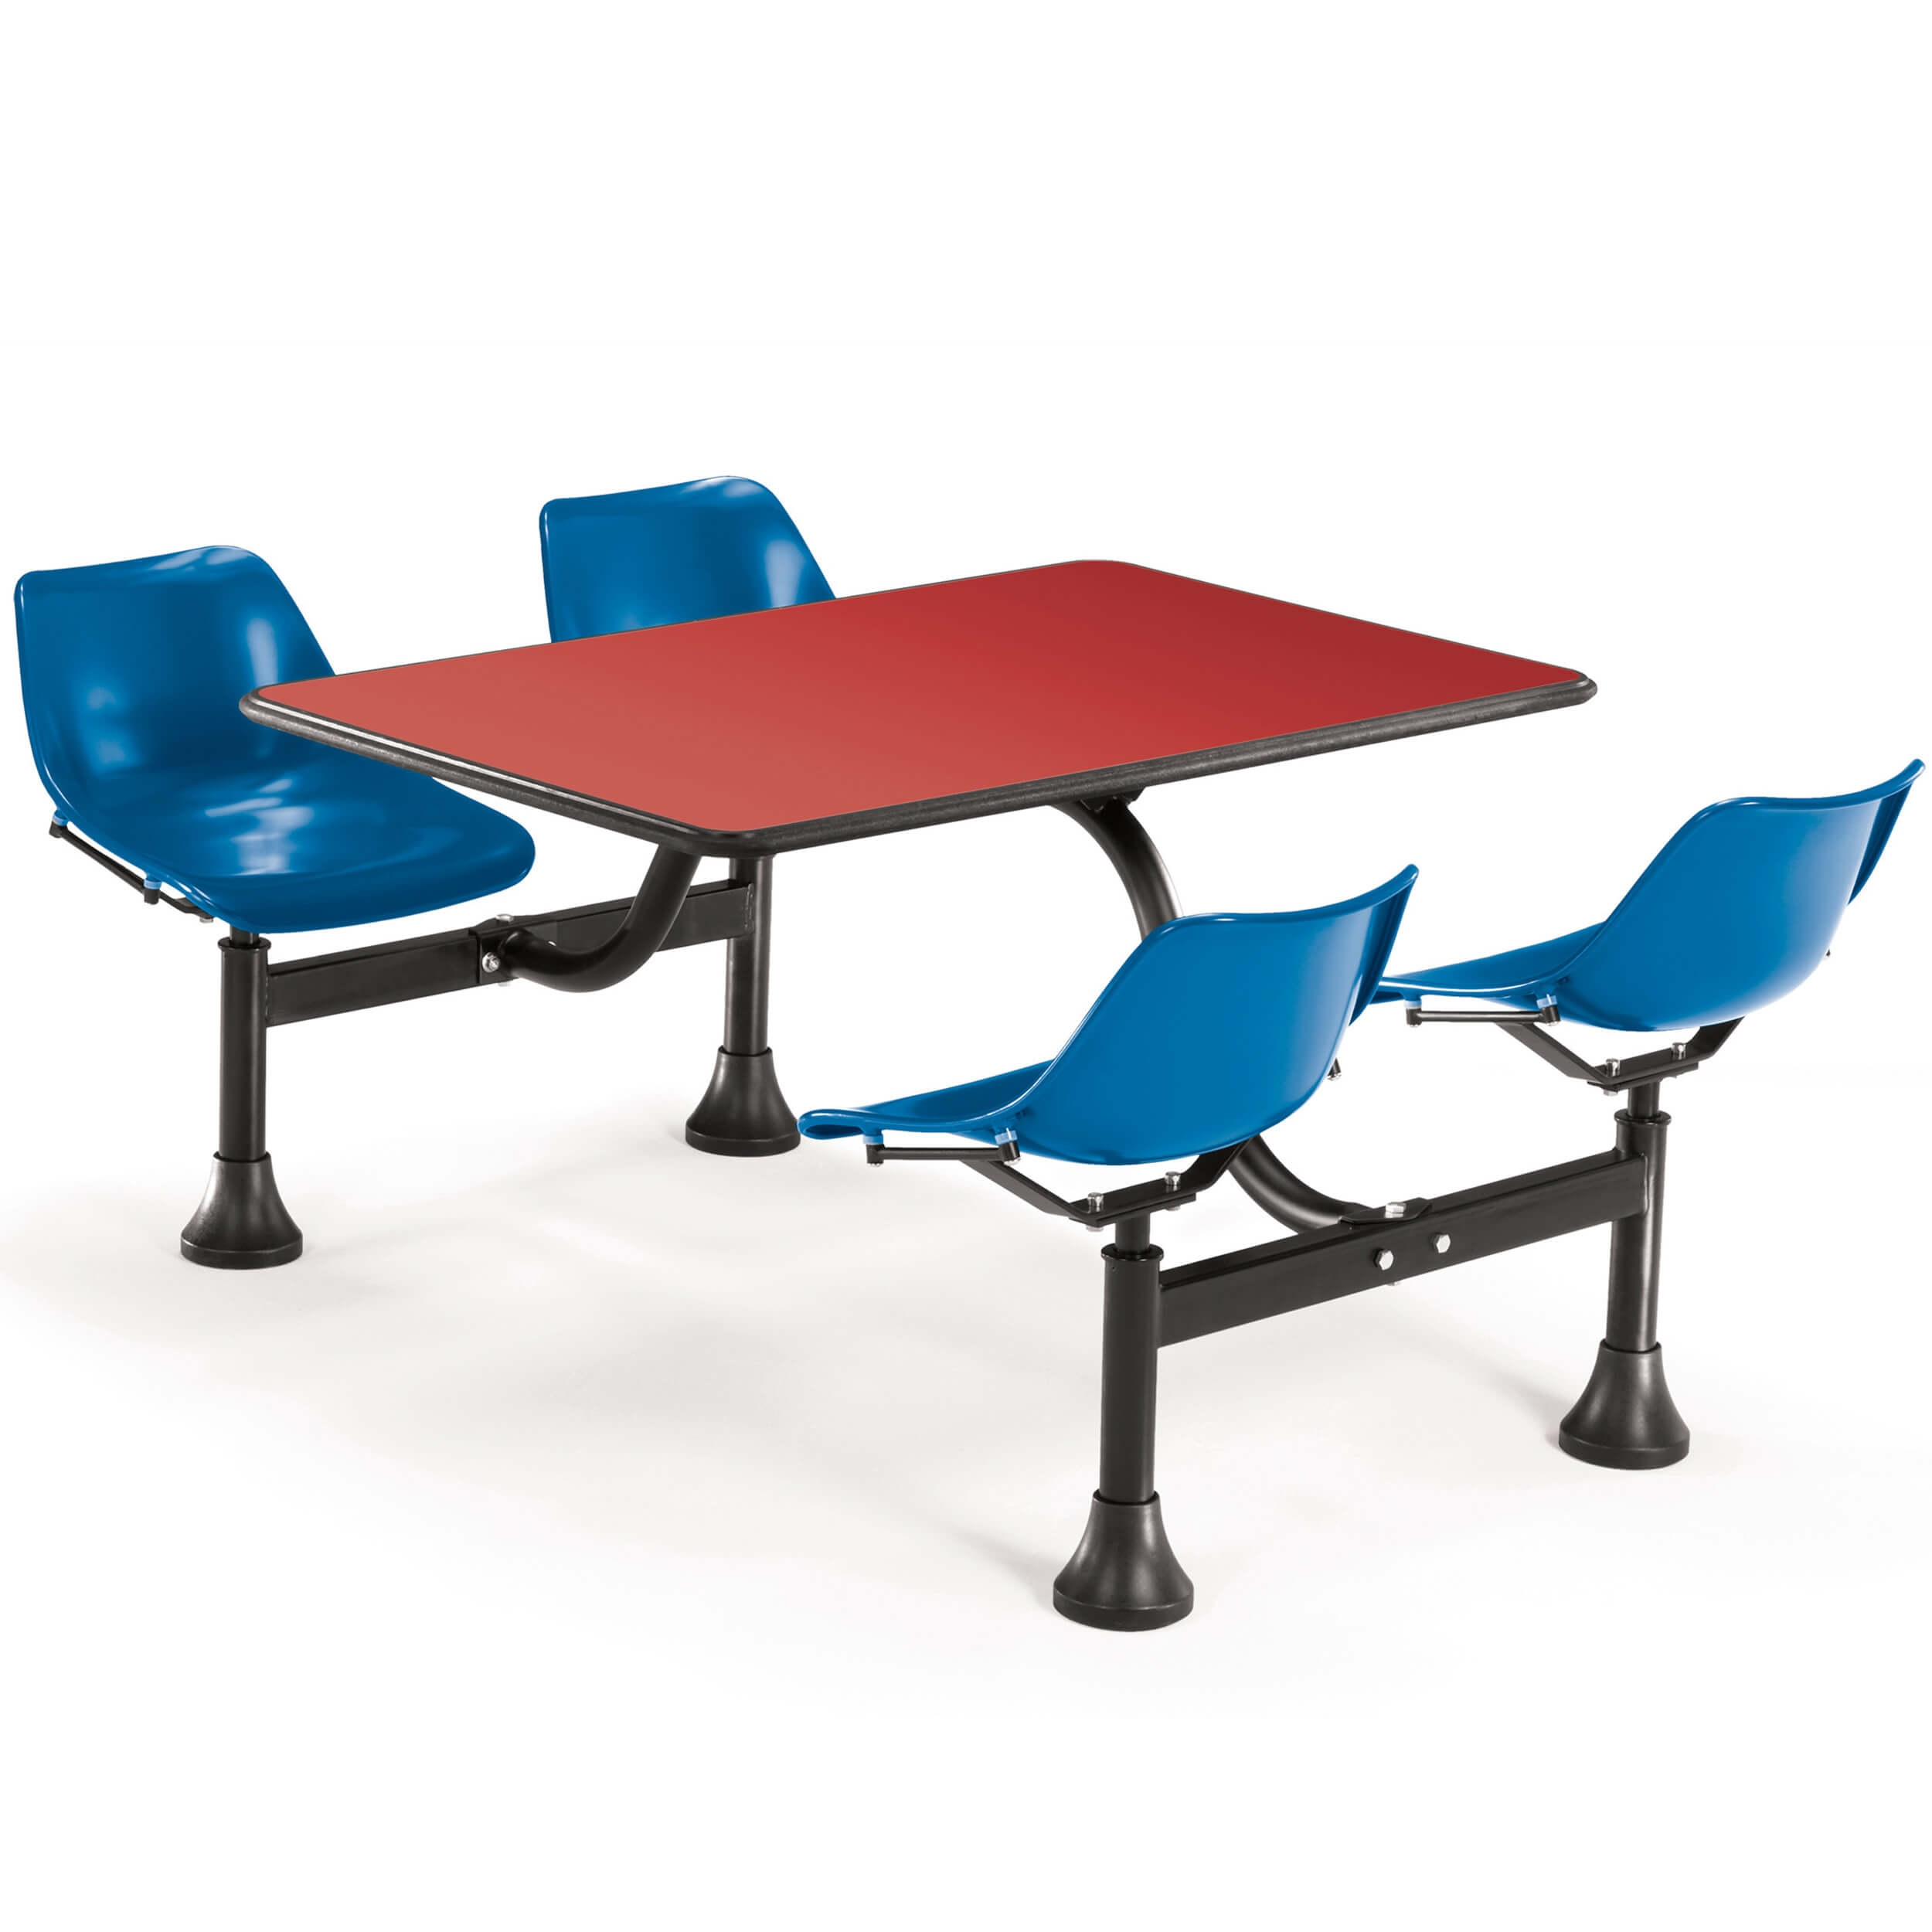 Dining booth CUB 1002 BLUE RED OFM